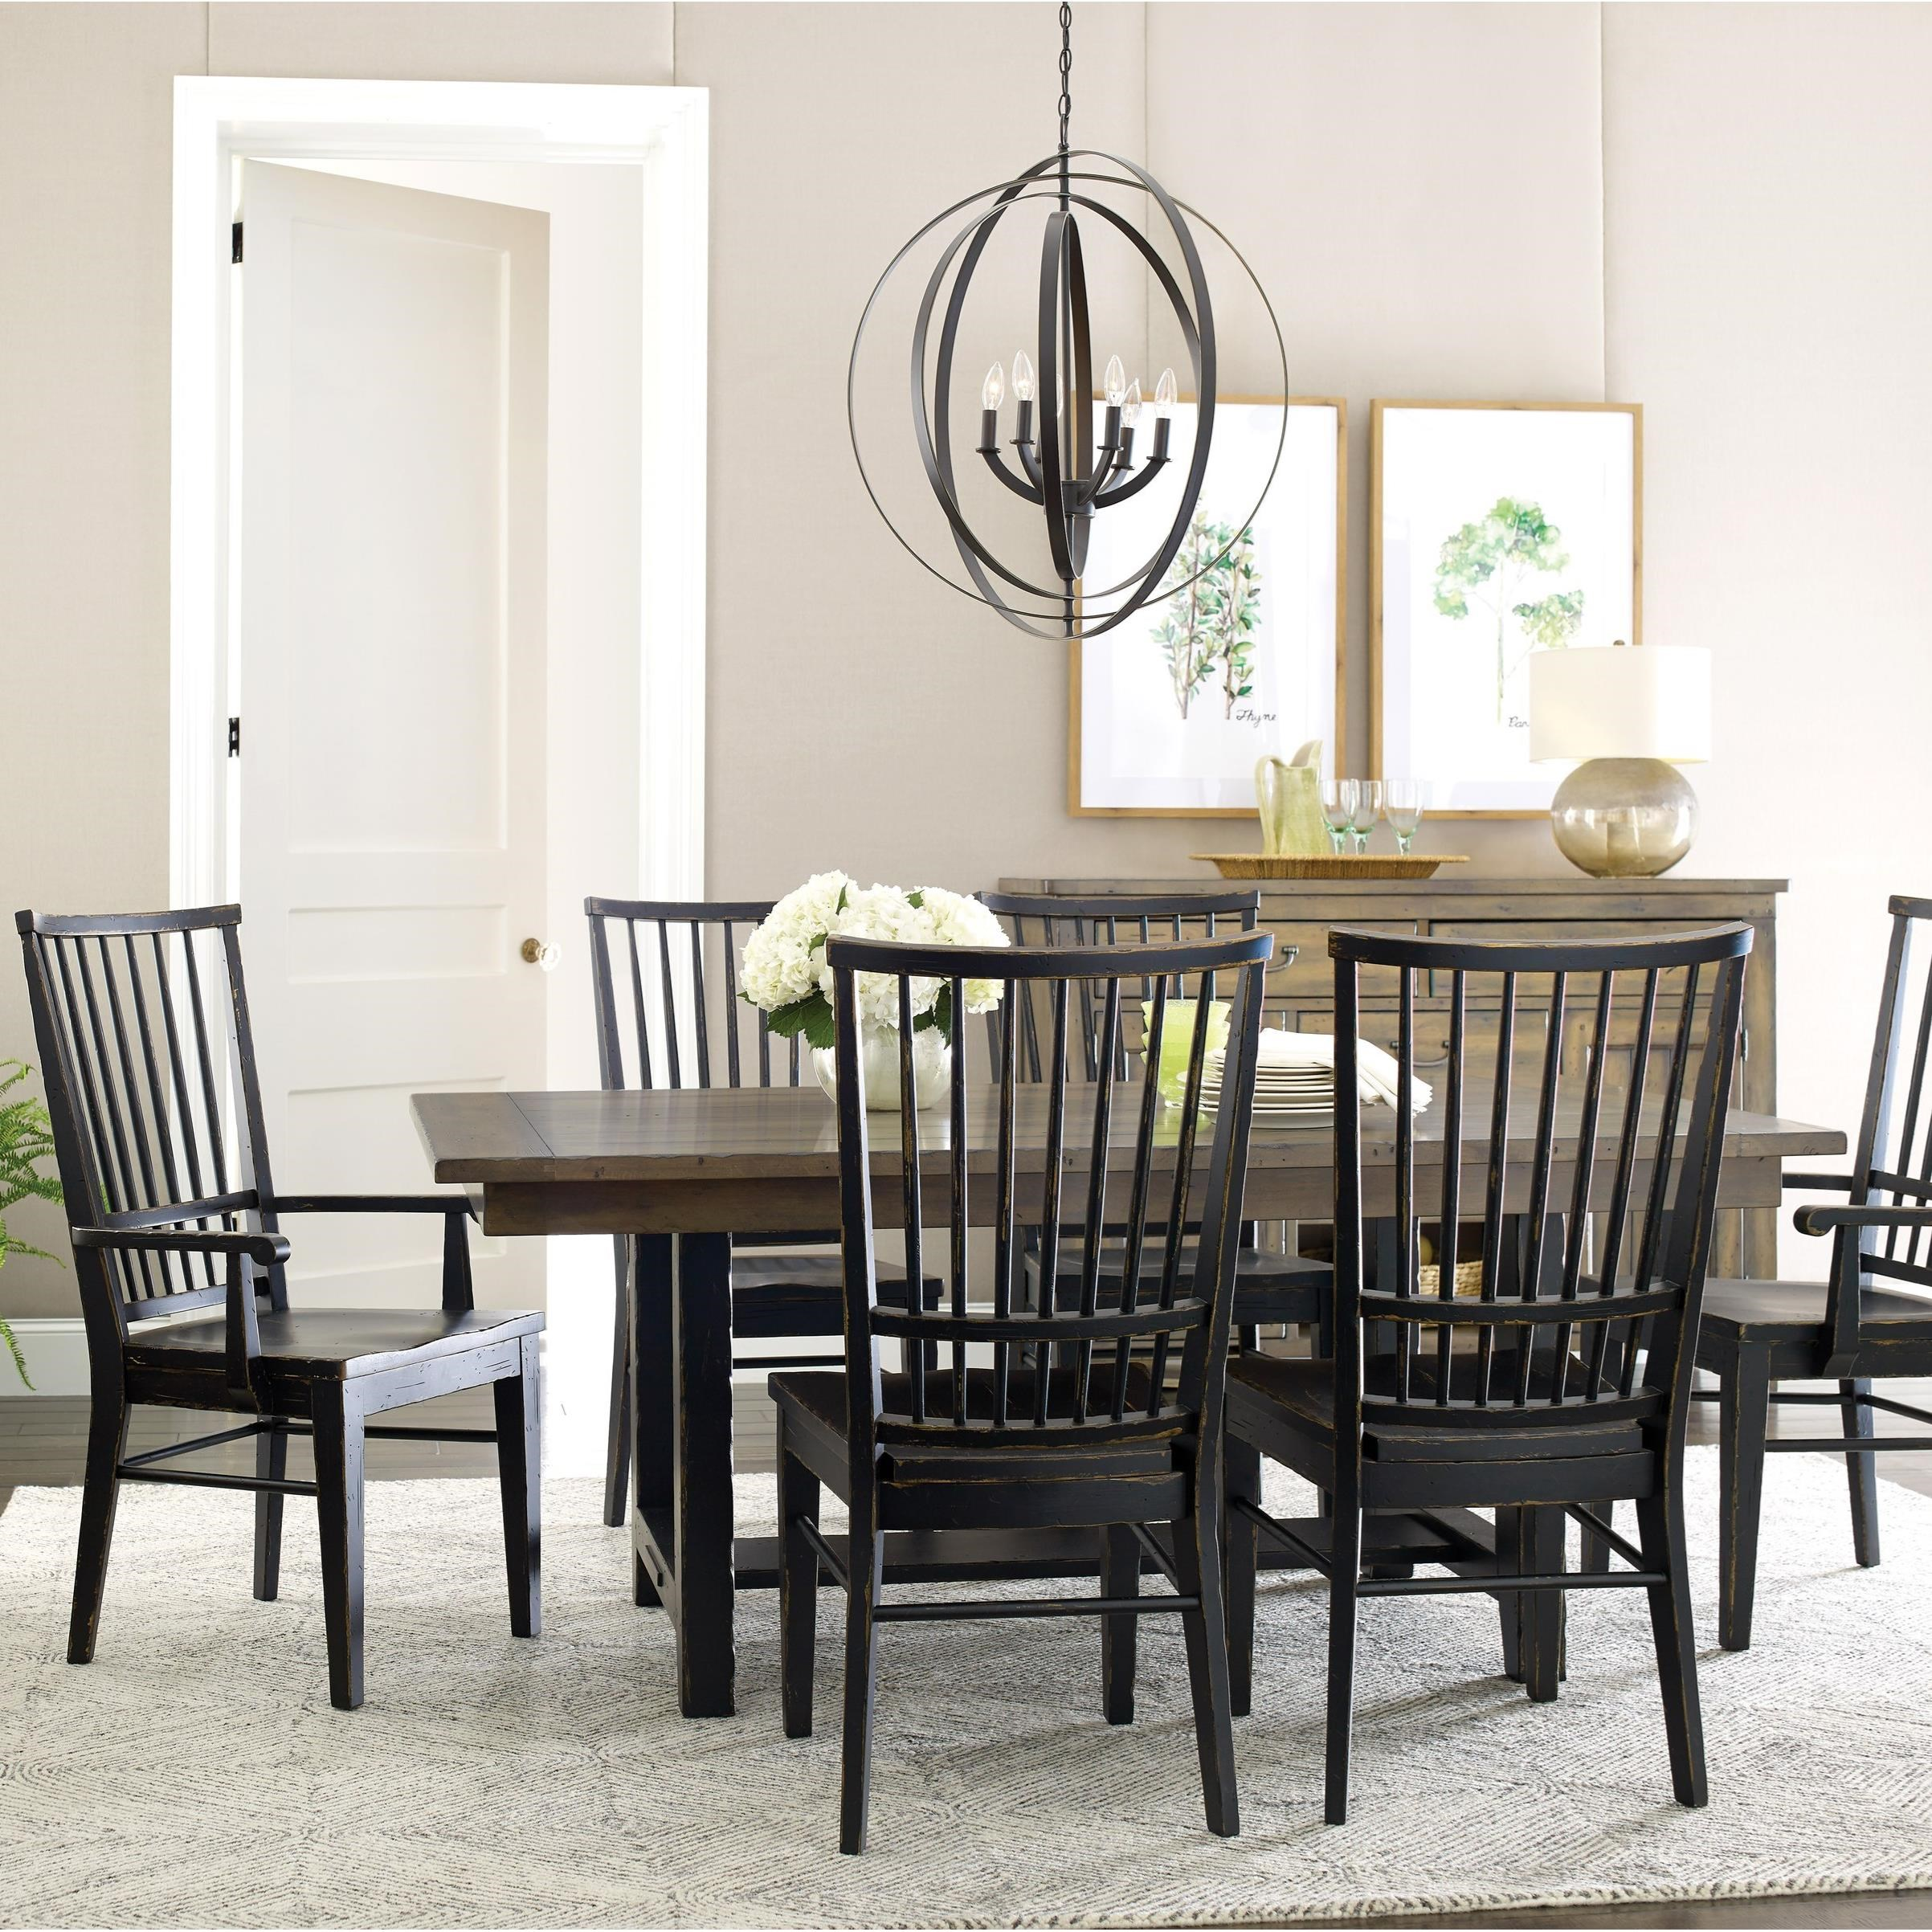 Mill House Dining Table and Chair Set for 6 by Kincaid Furniture at Northeast Factory Direct